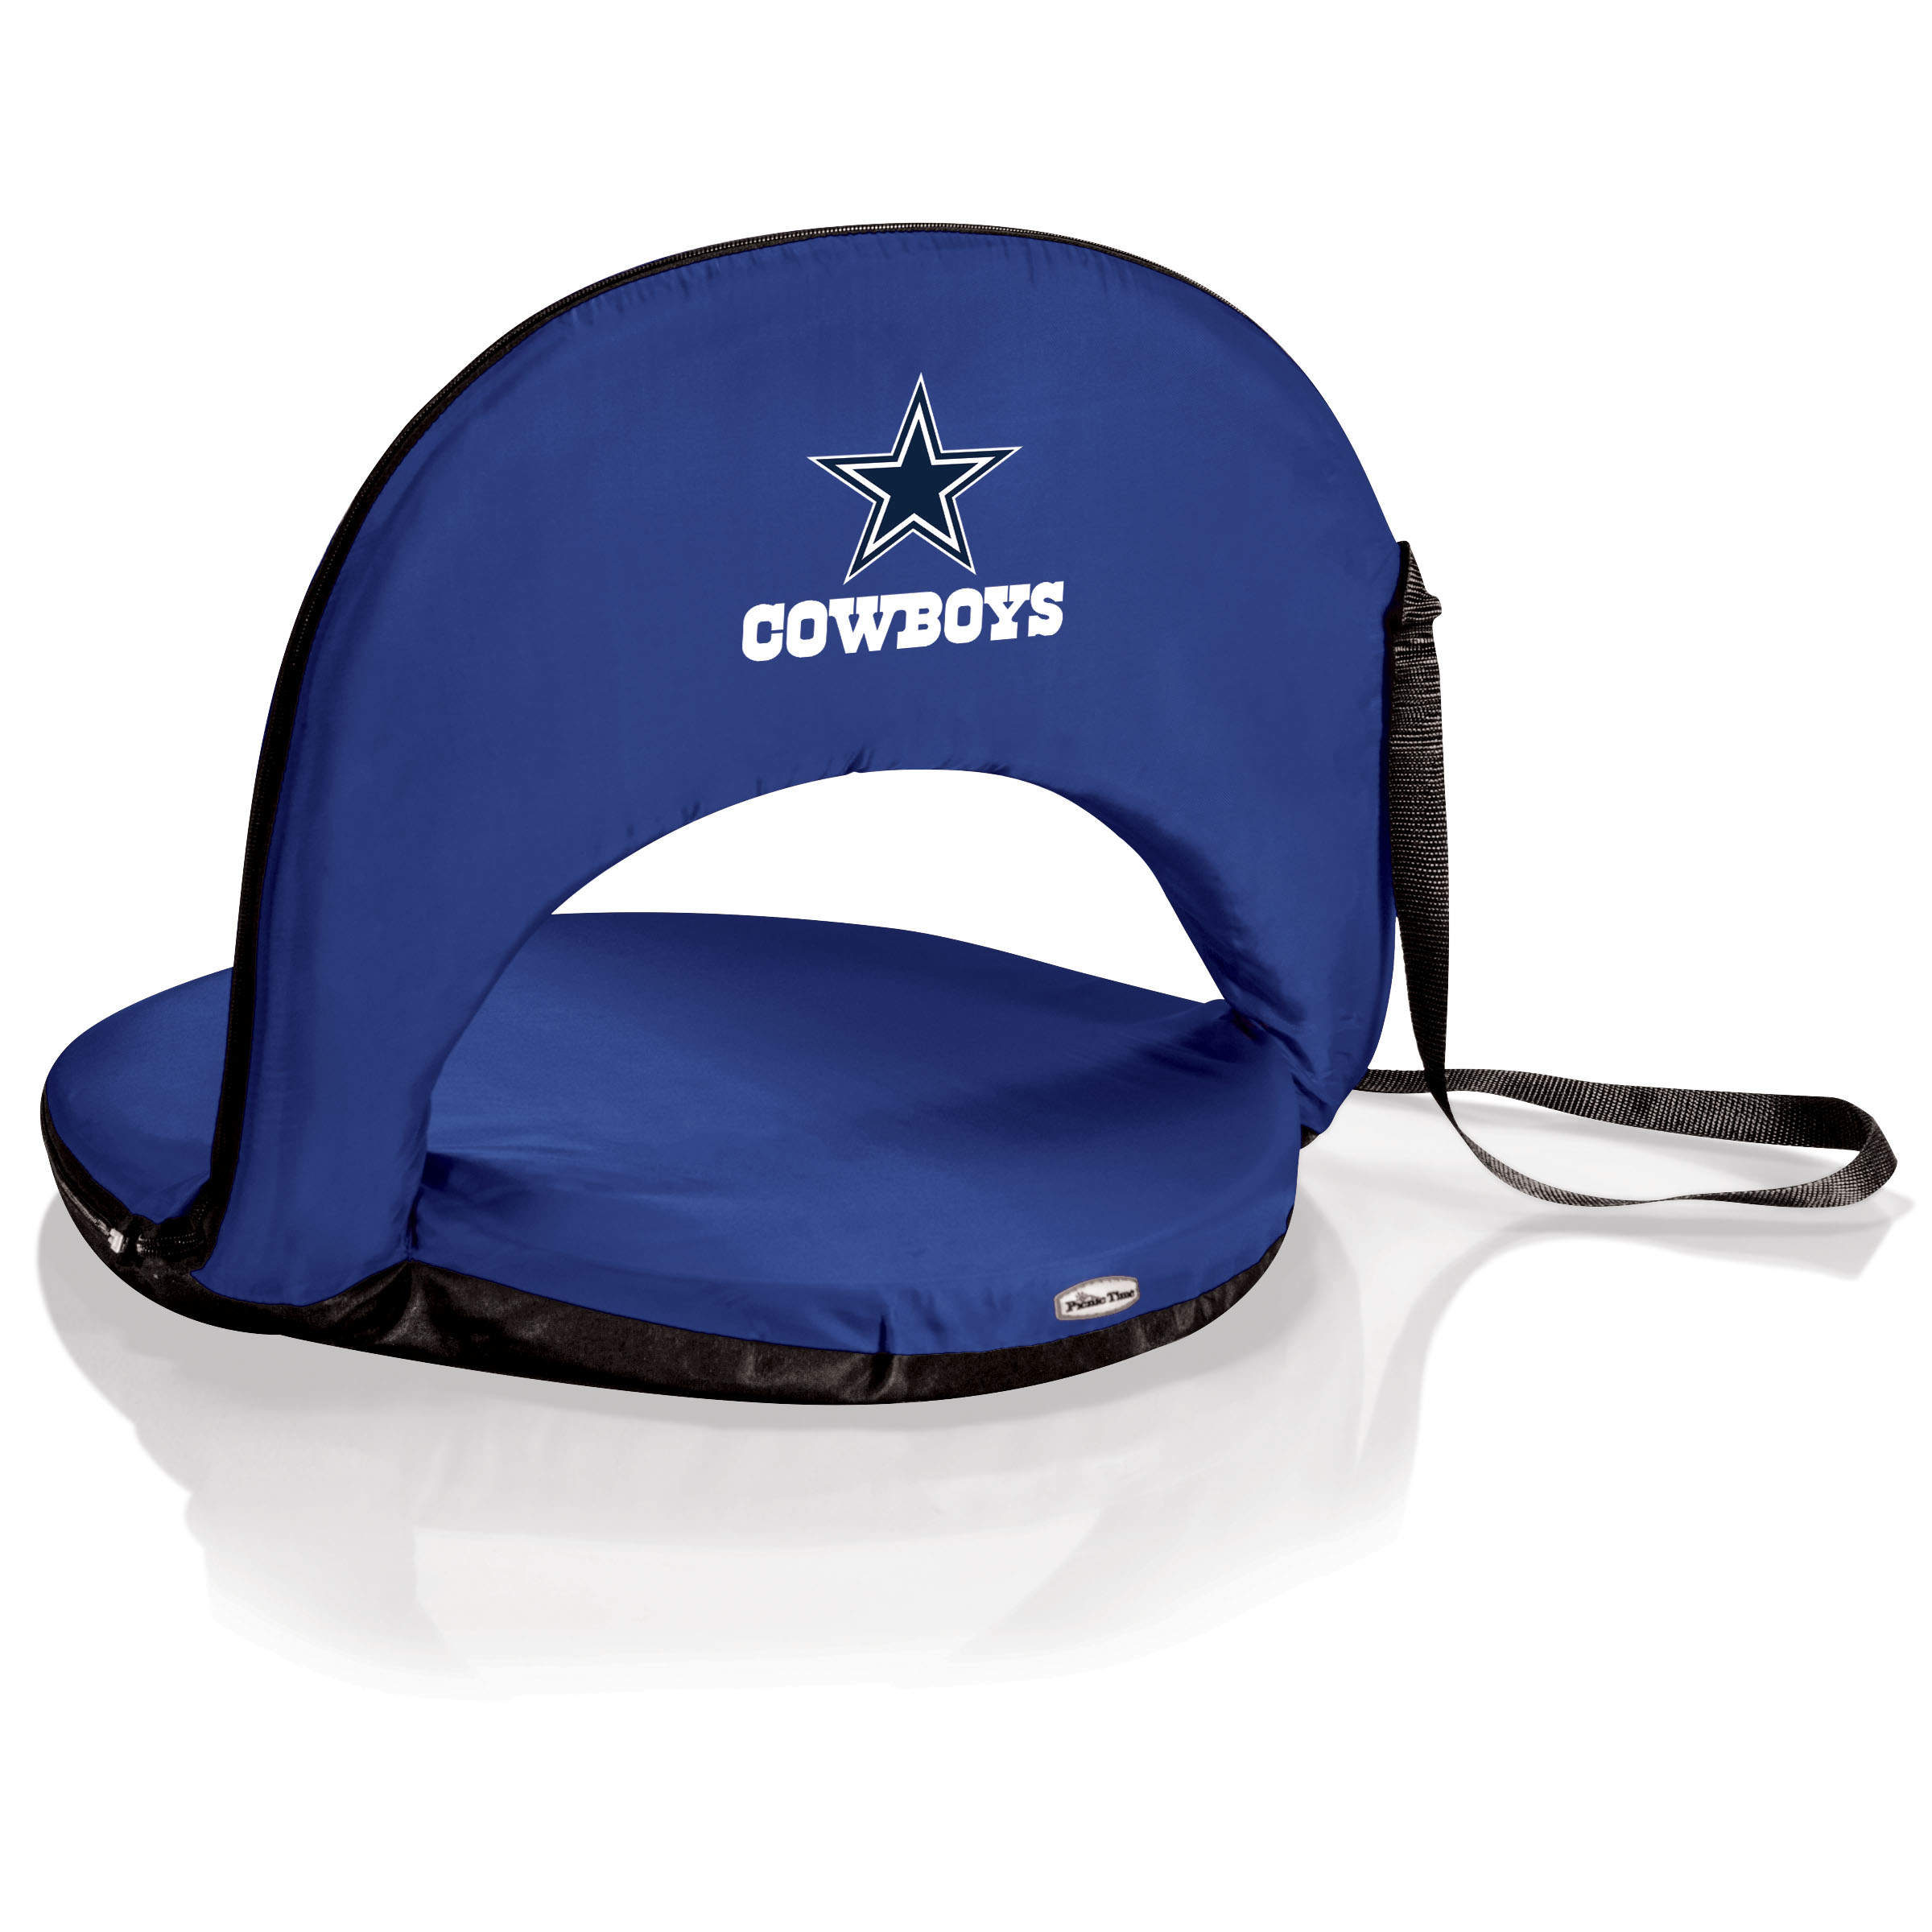 Picnic Time Nfl Oniva Seat Dallas Cowboys